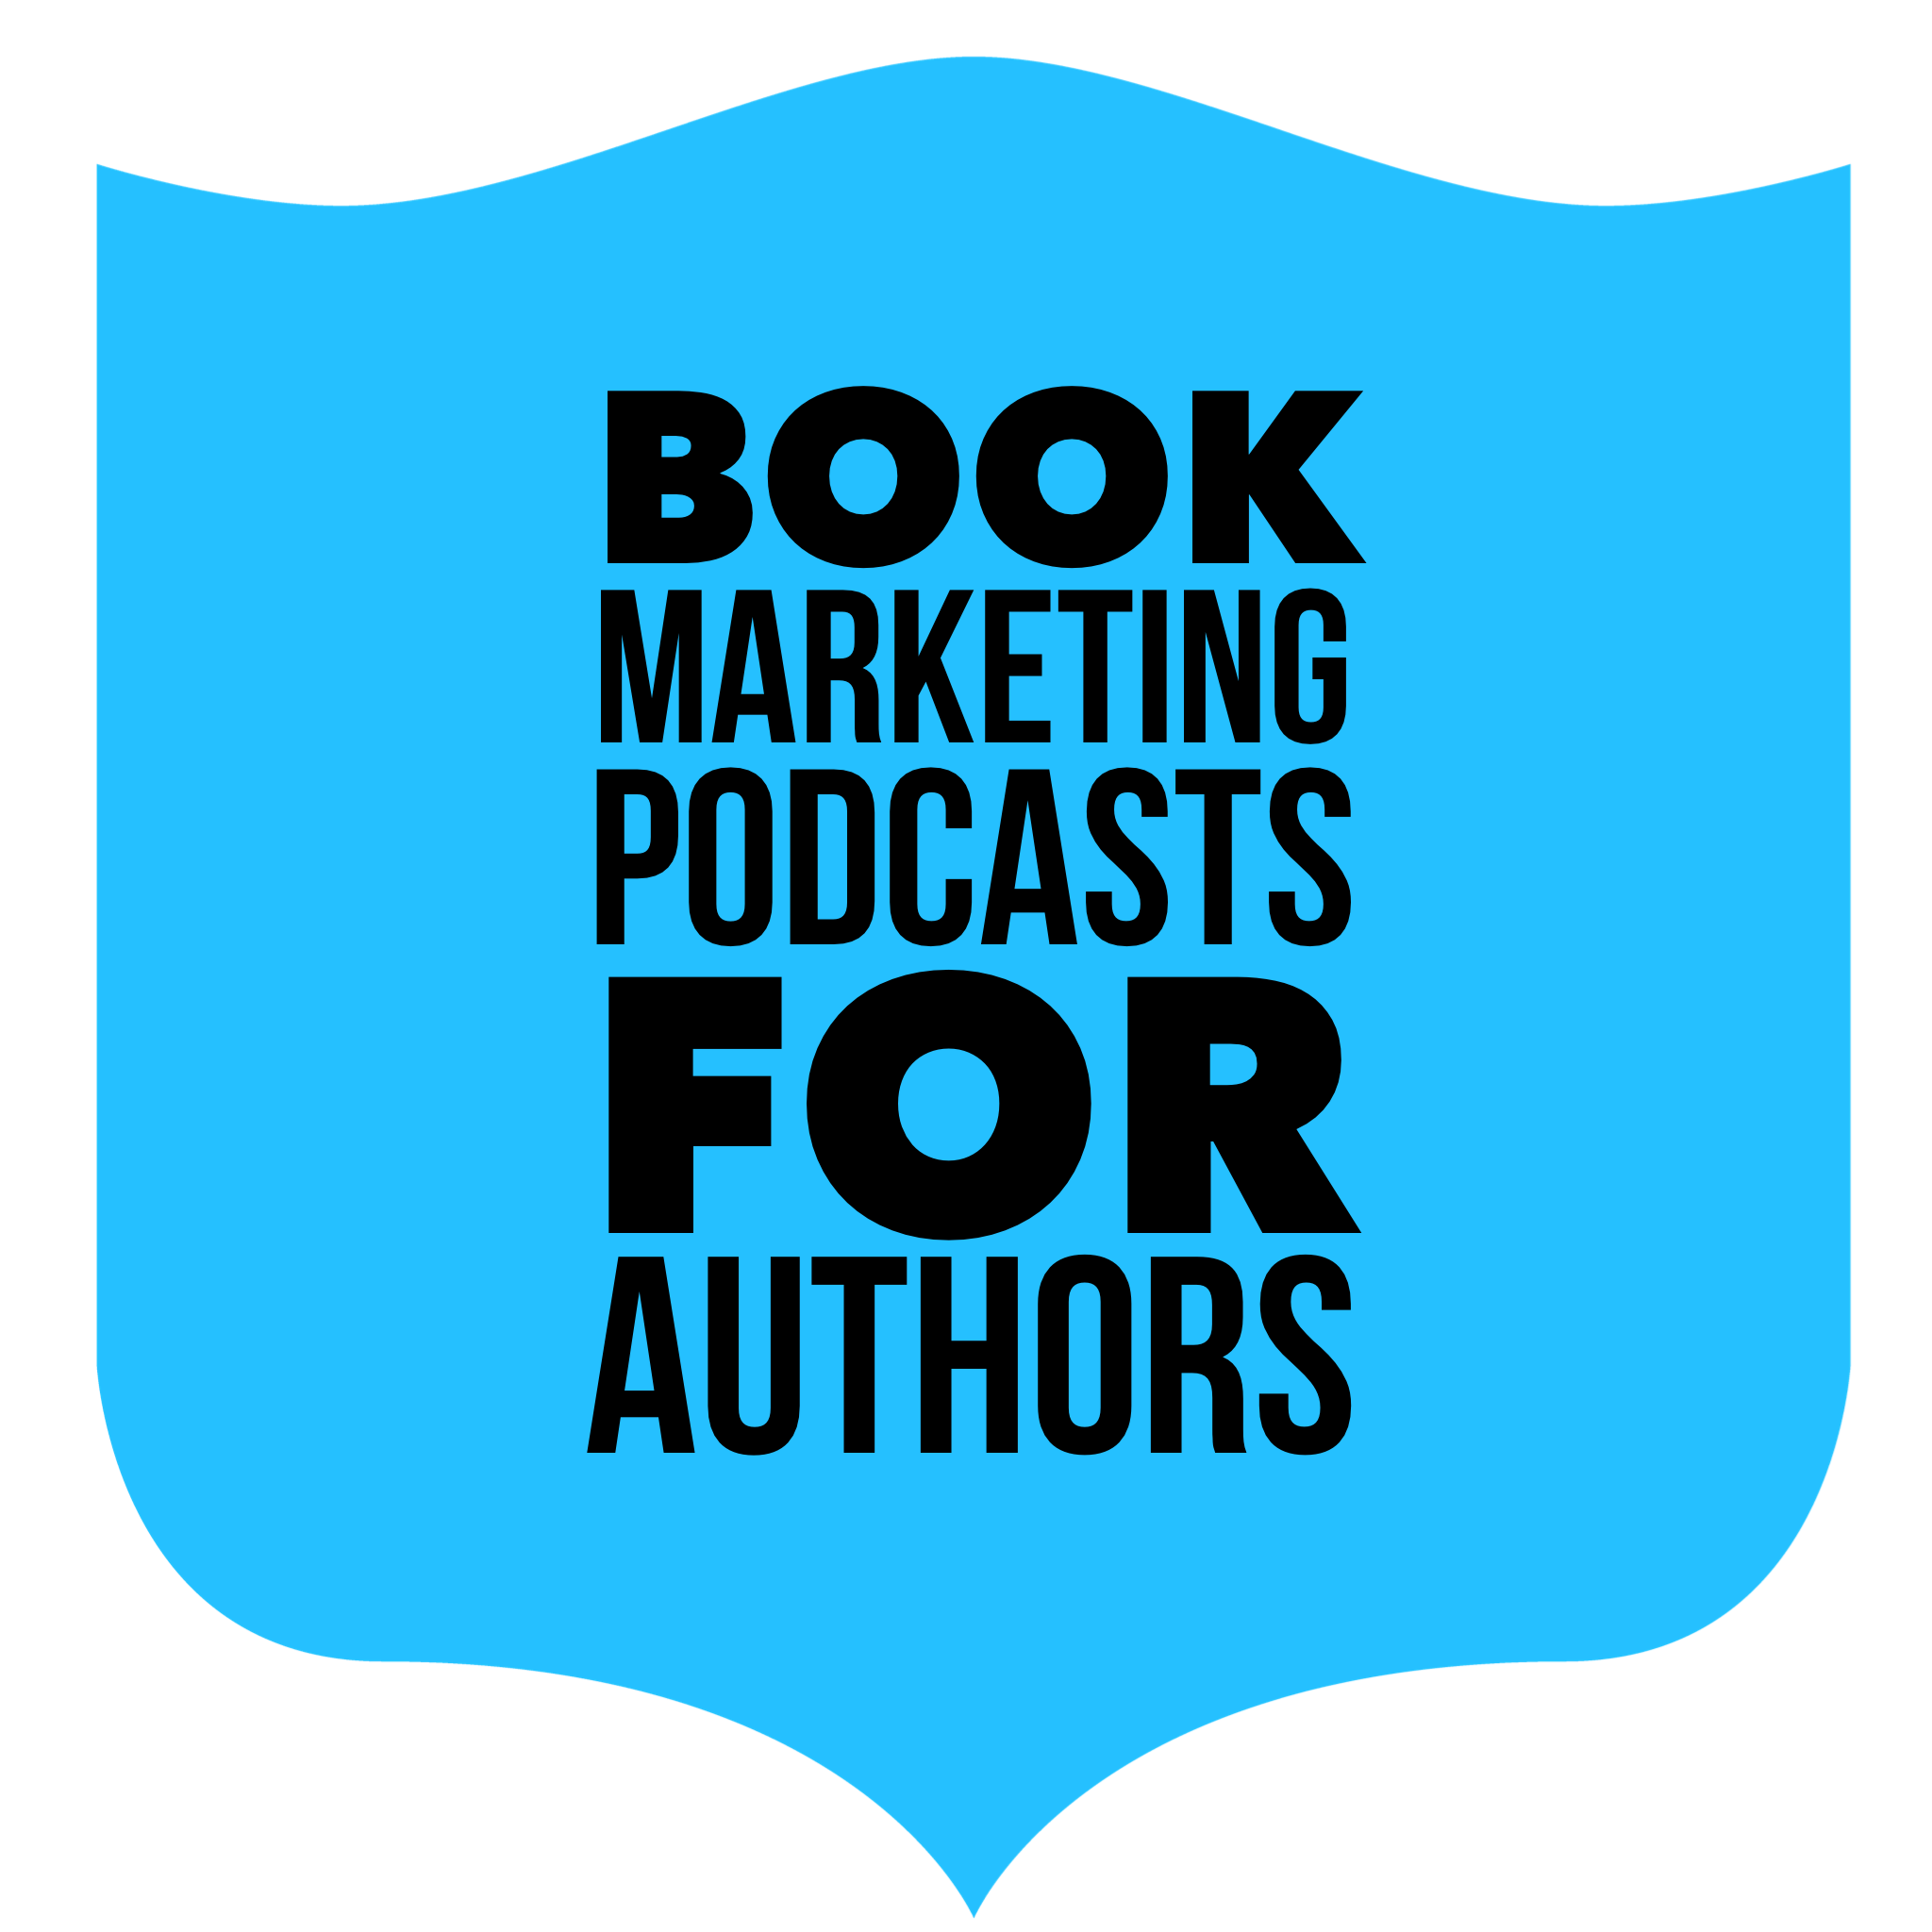 LM - Image - Ad - Book Marketing Podcast Square.PNG